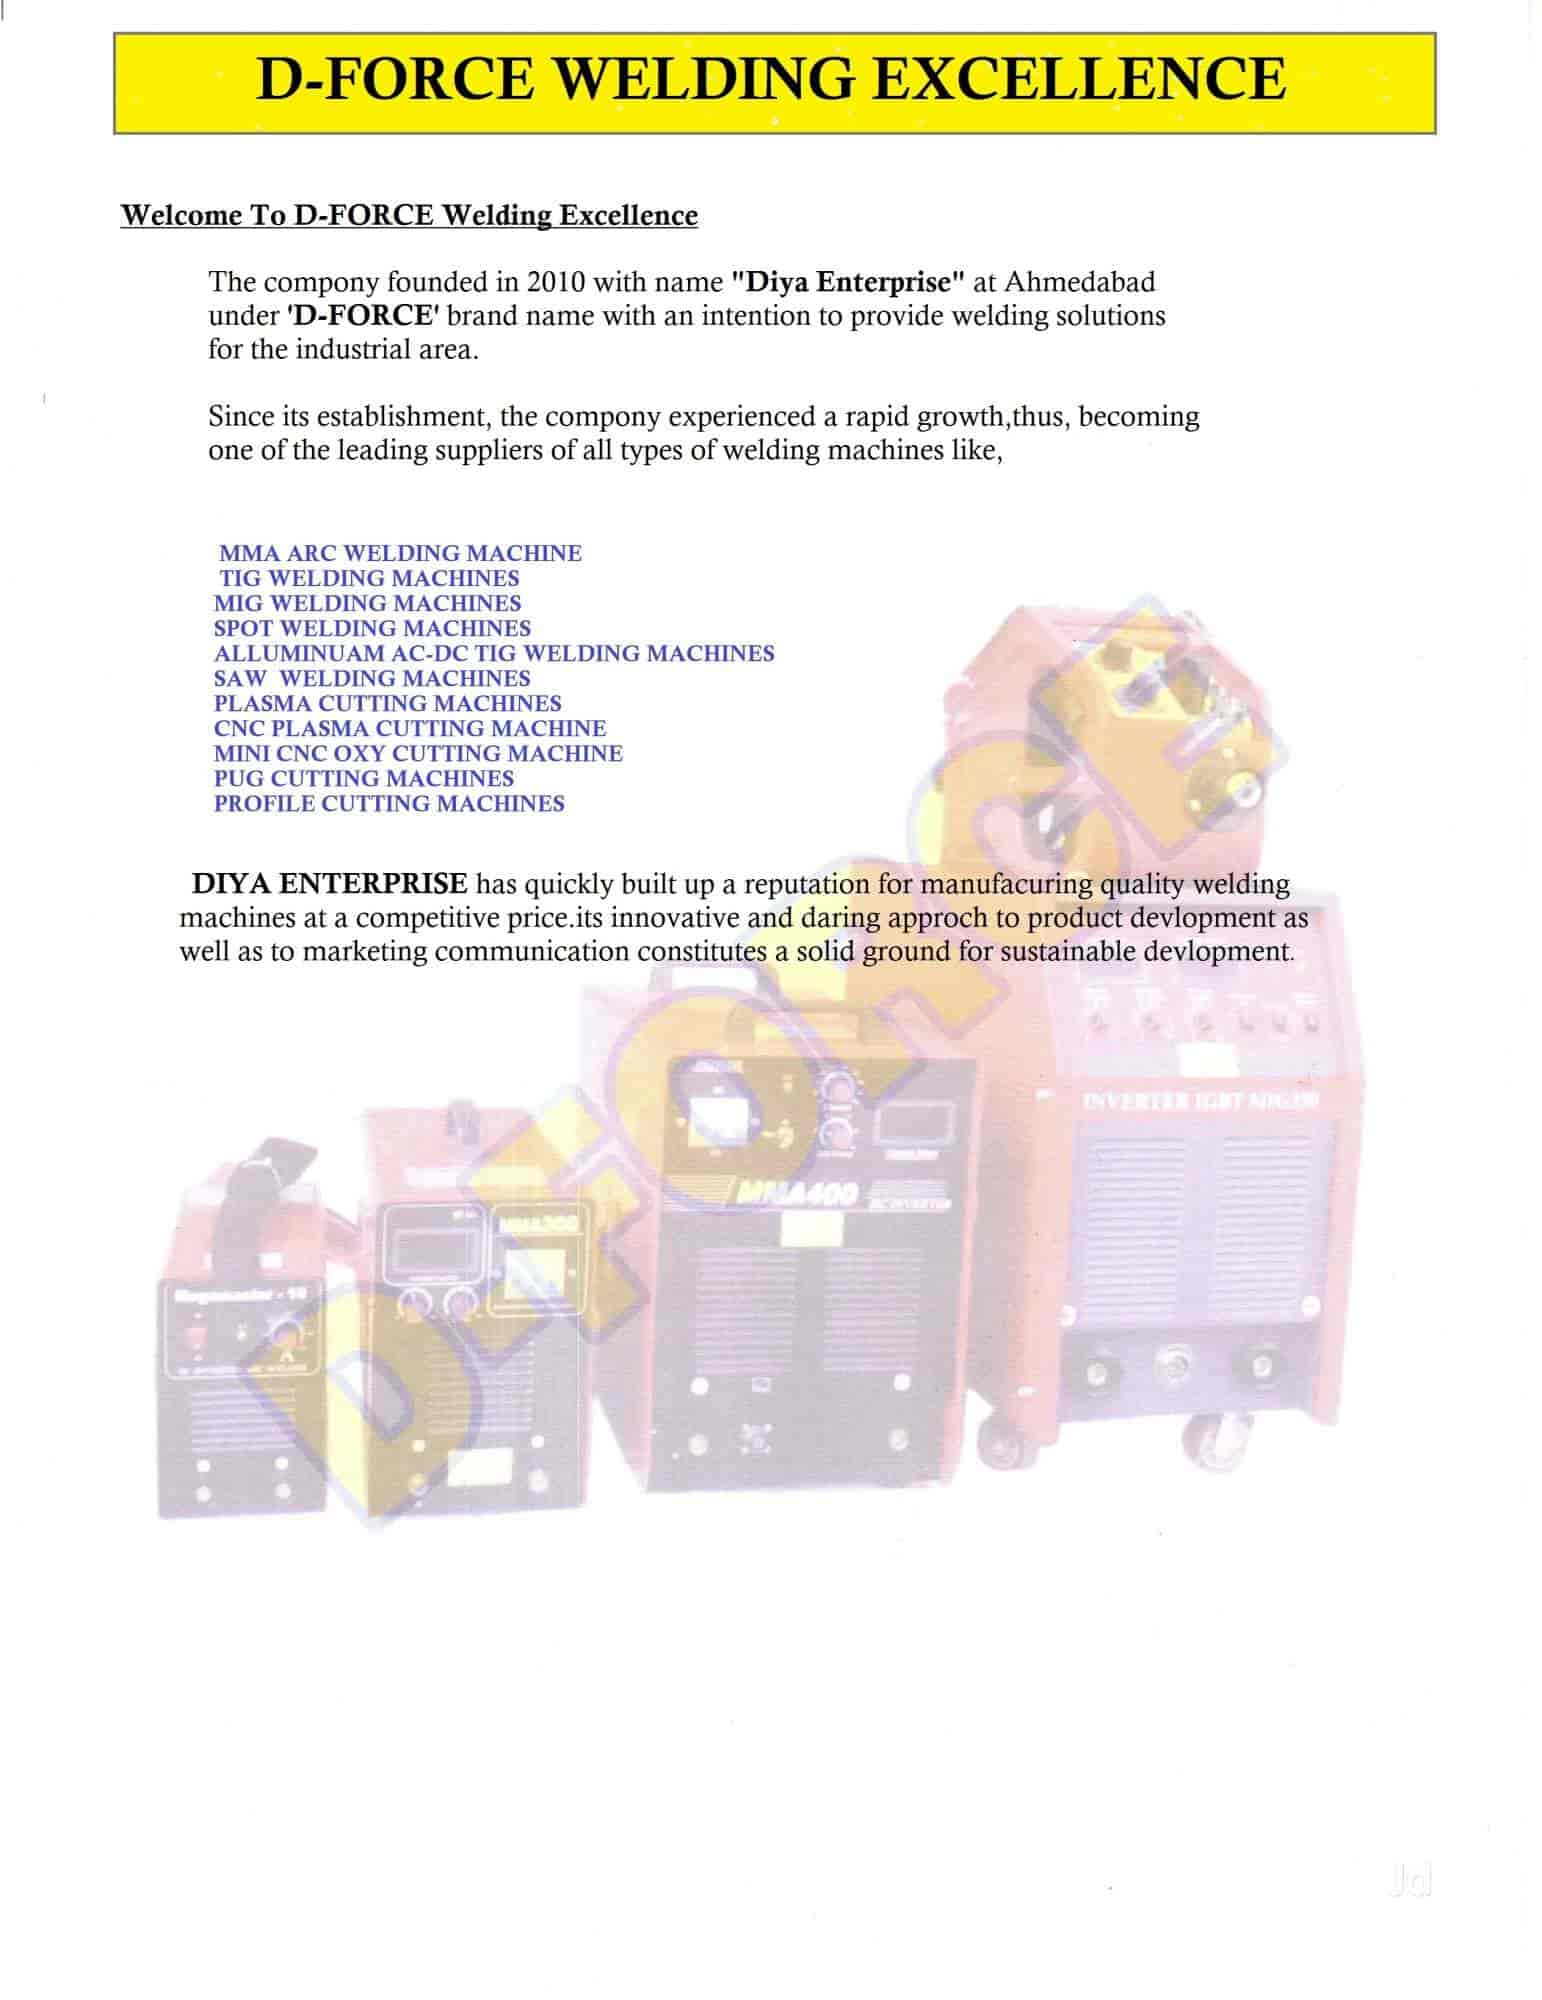 hight resolution of d force welding excellence vatva gidc welding machine manufacturers in ahmedabad justdial